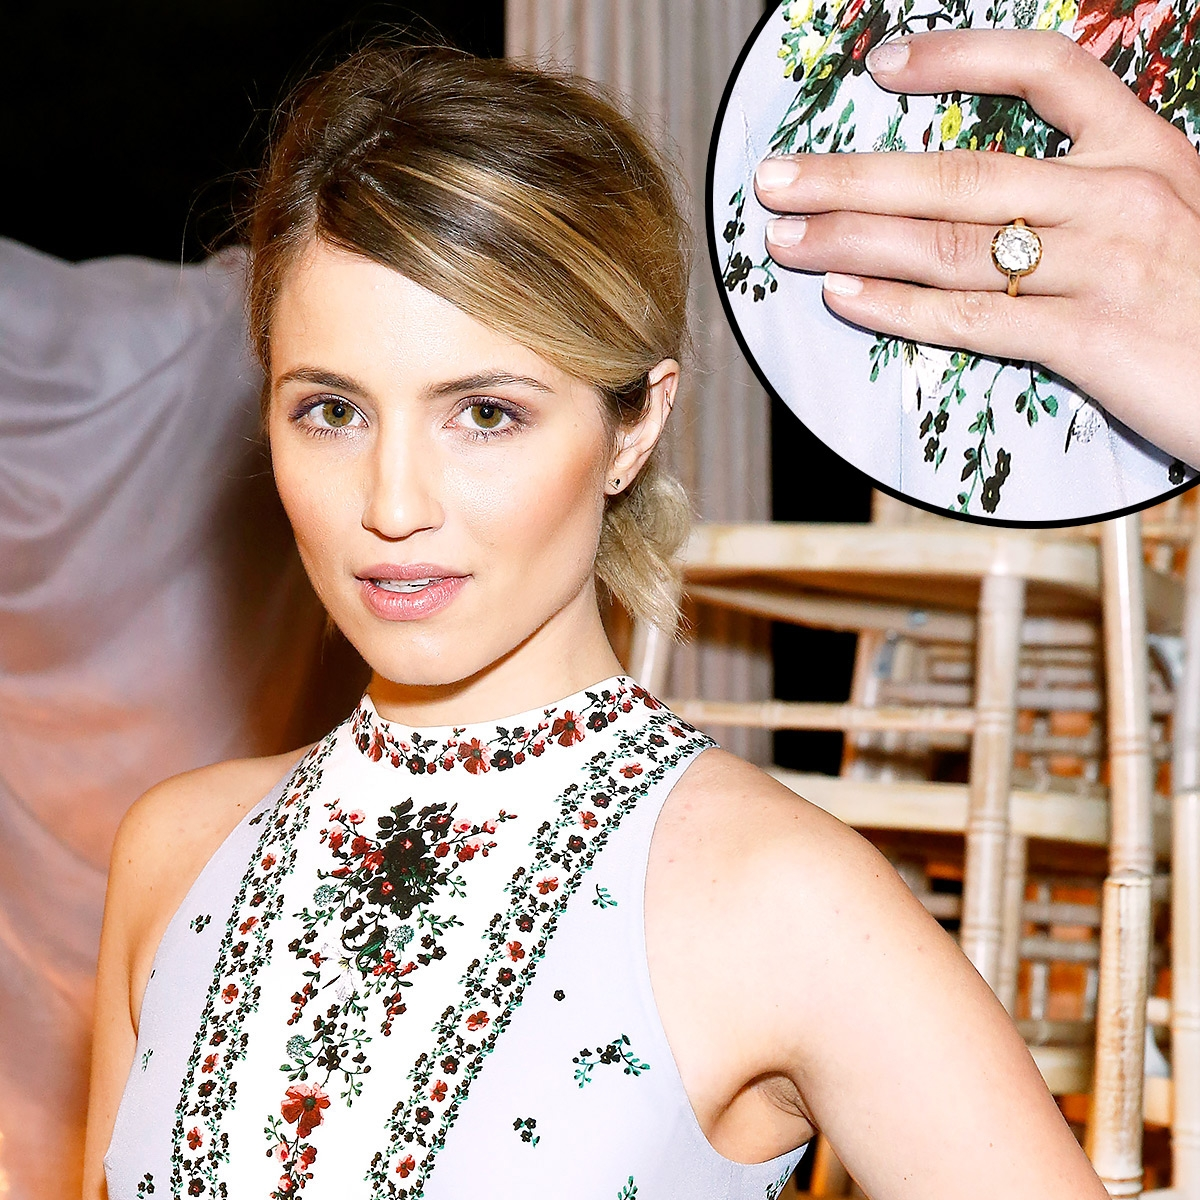 Diana Agron debuted her engagement ring at London Fashion Week 2016.  Darren Gerrish/Getty Images